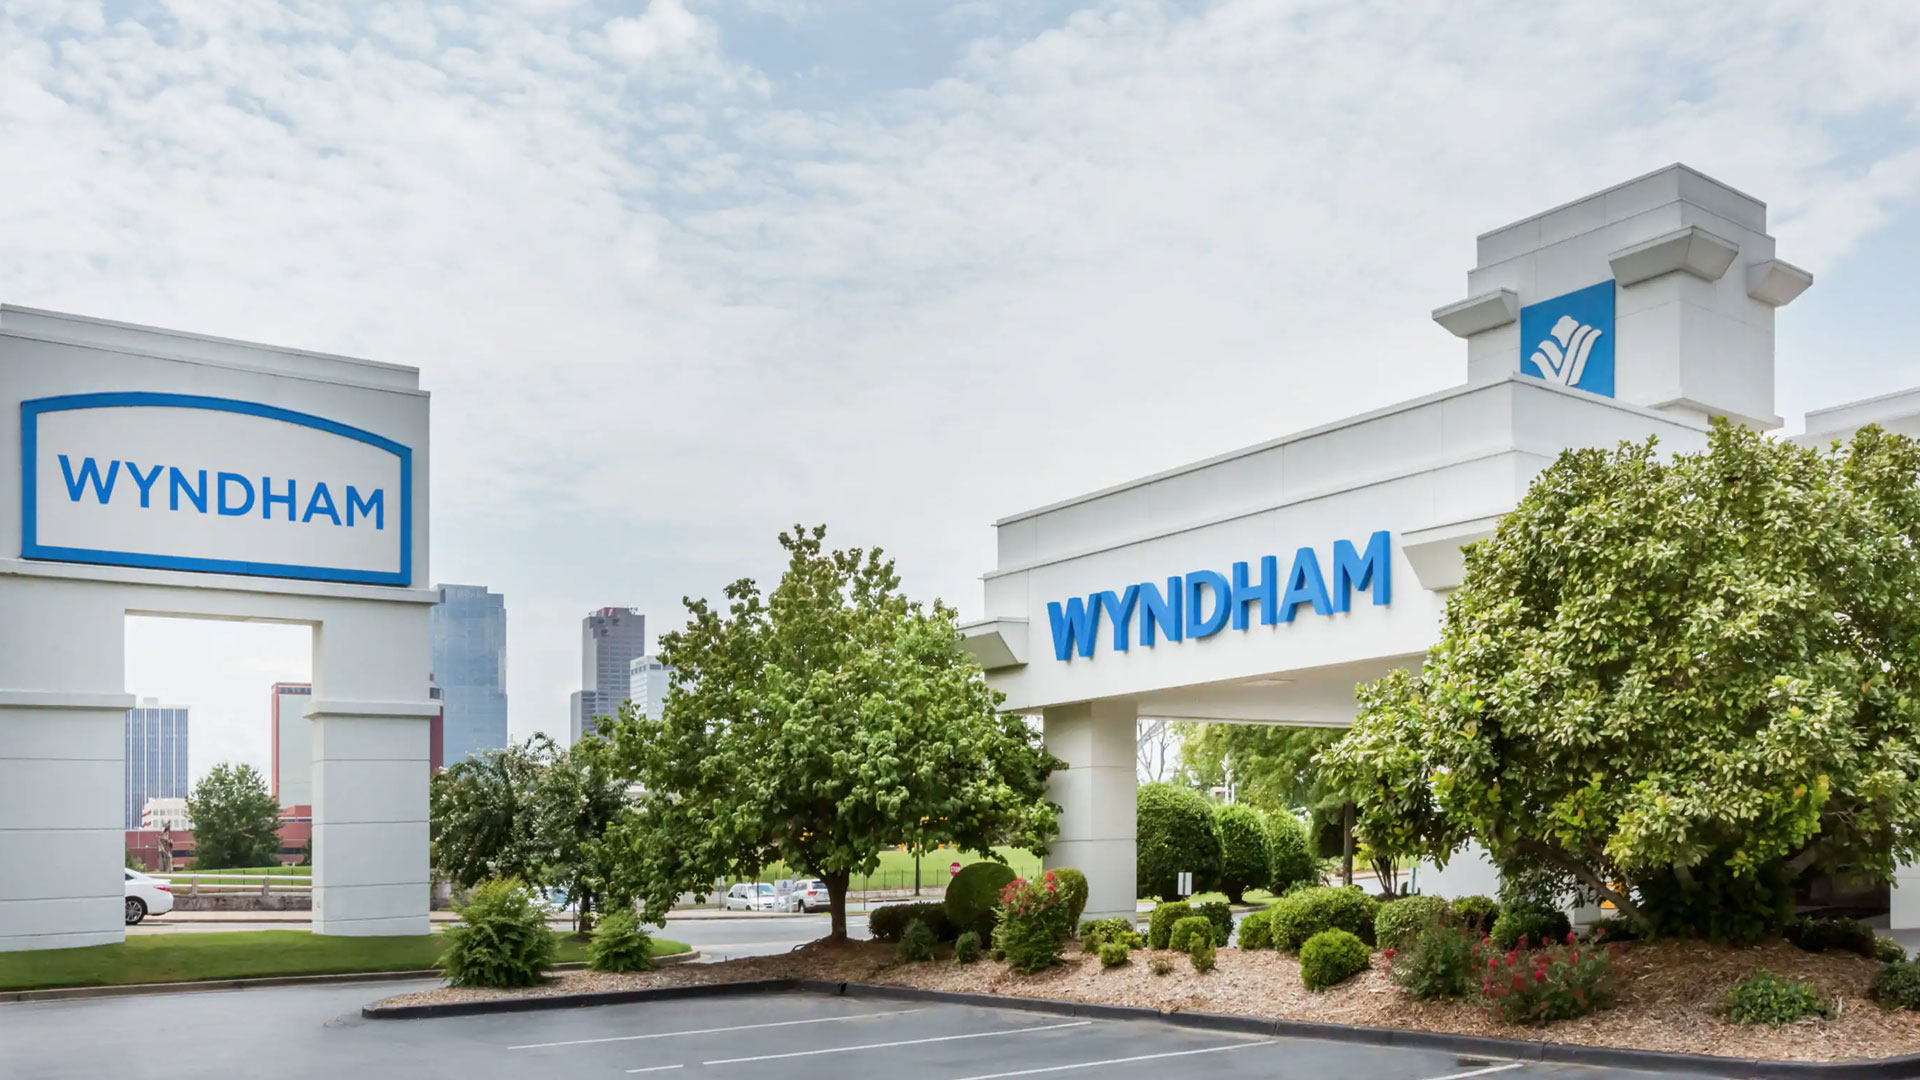 Image of Wyndham hotel in North Little Rock, Arkansas